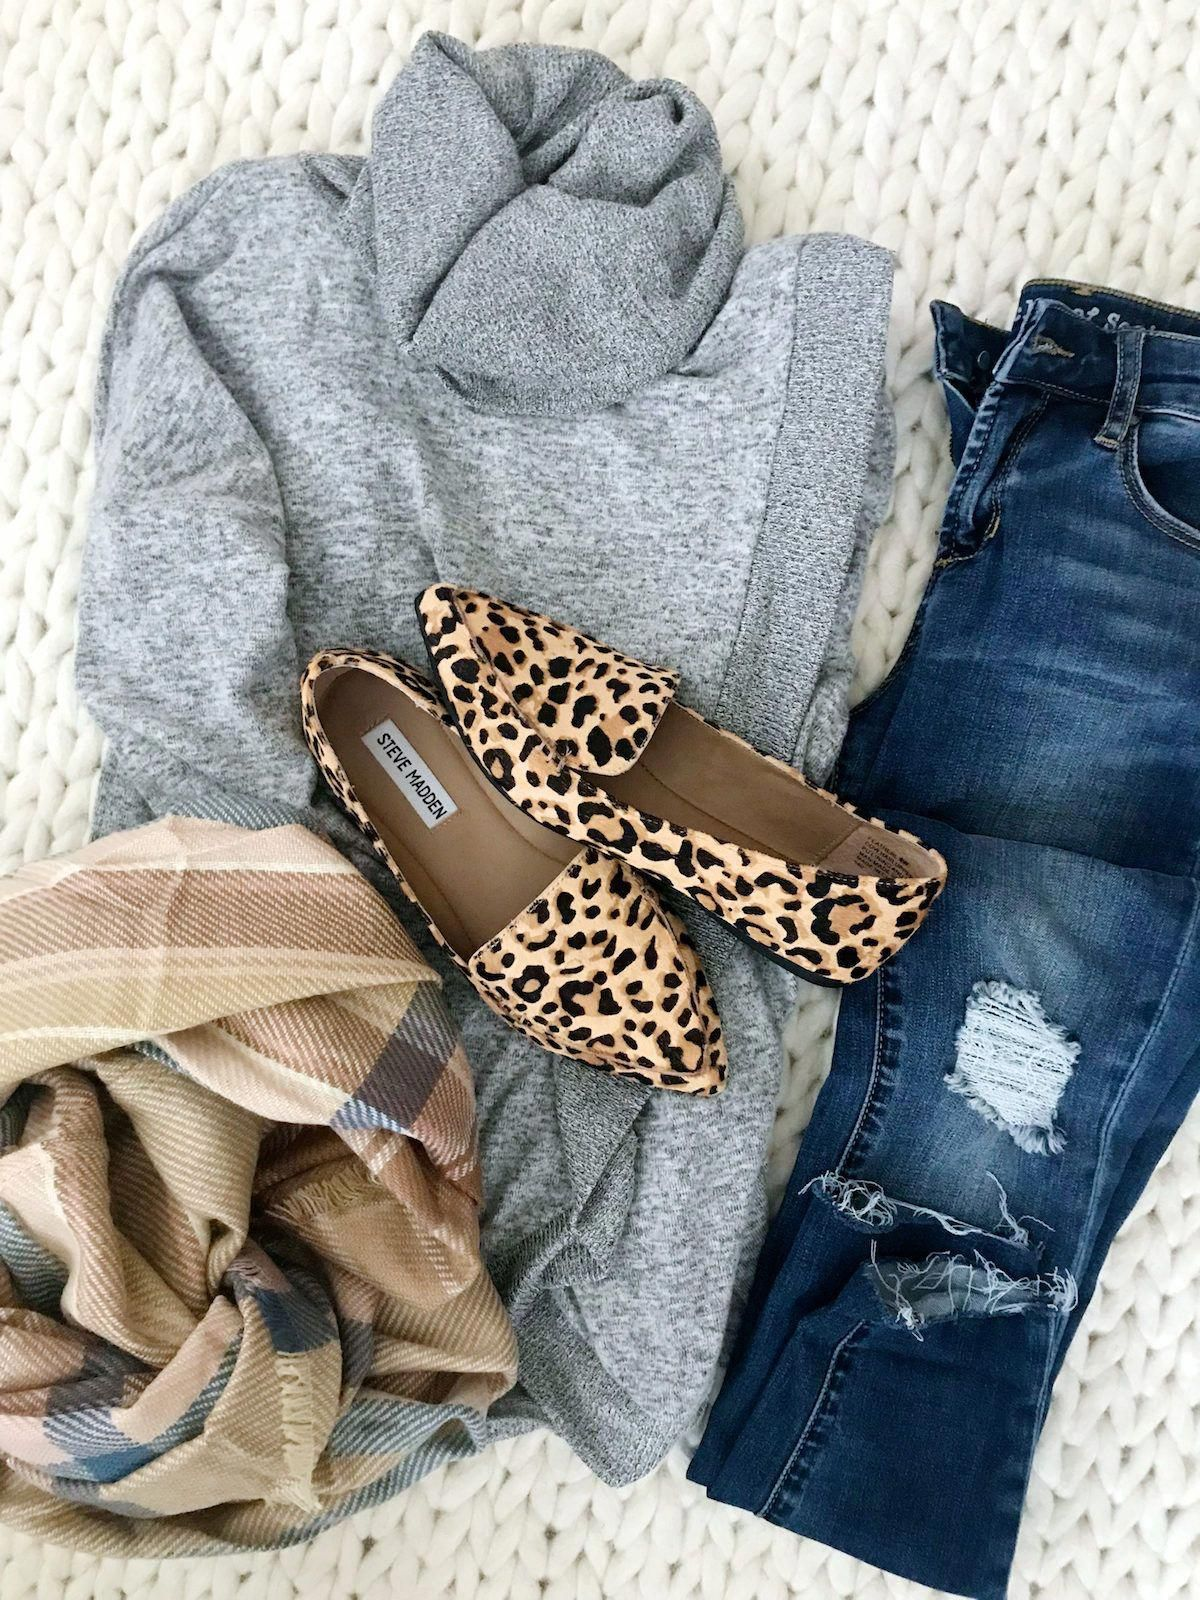 b4d1131c6e4 Fall outfit with cardigan jeans and leopard flats  fallwomensfashion ...